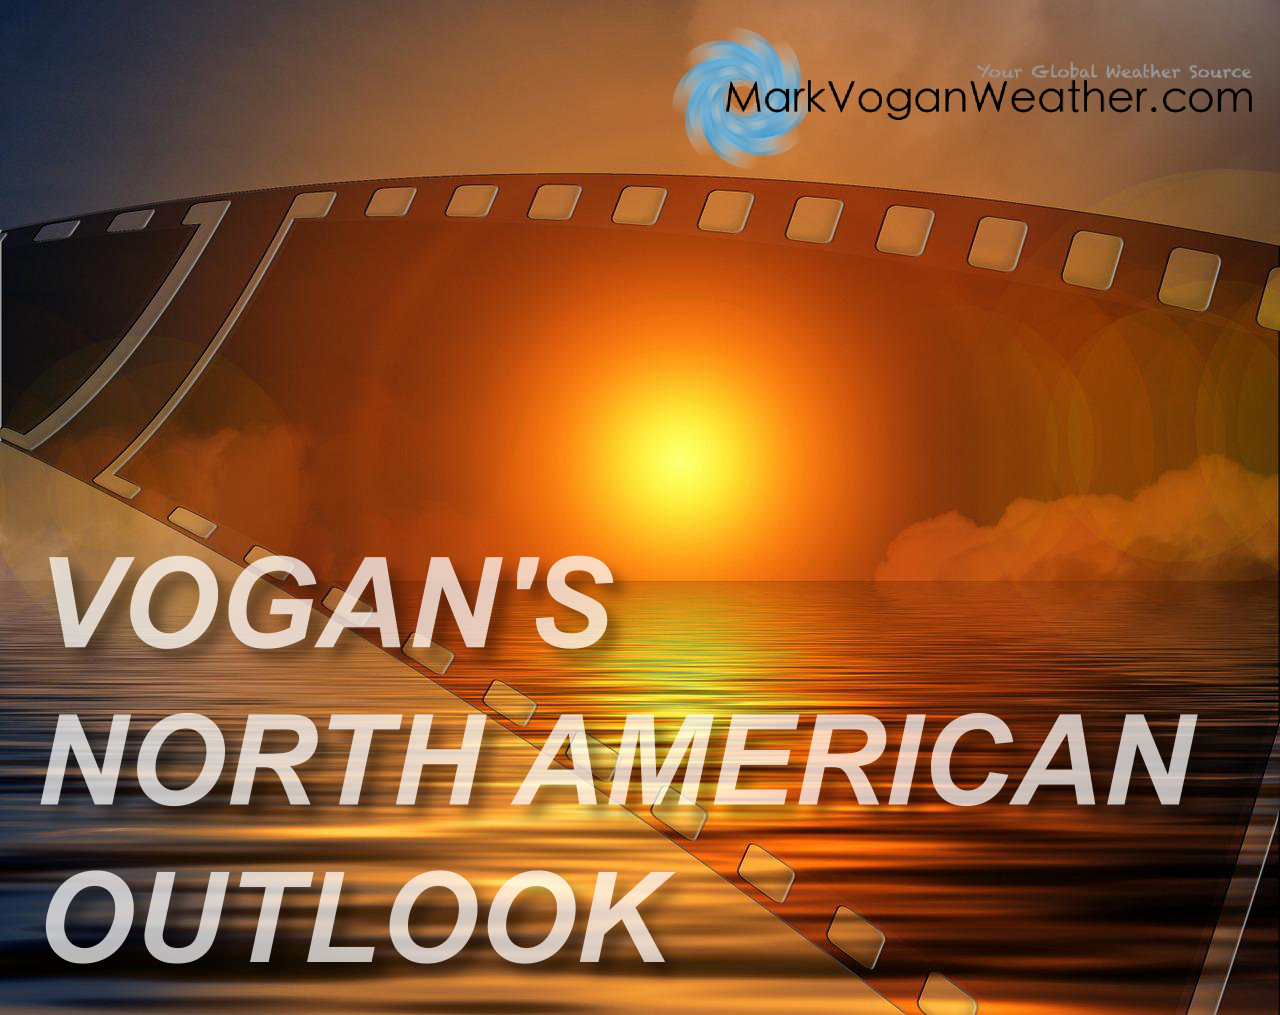 WED 29 OCT: VOGAN'S NORTH AMERICAN OUTLOOK